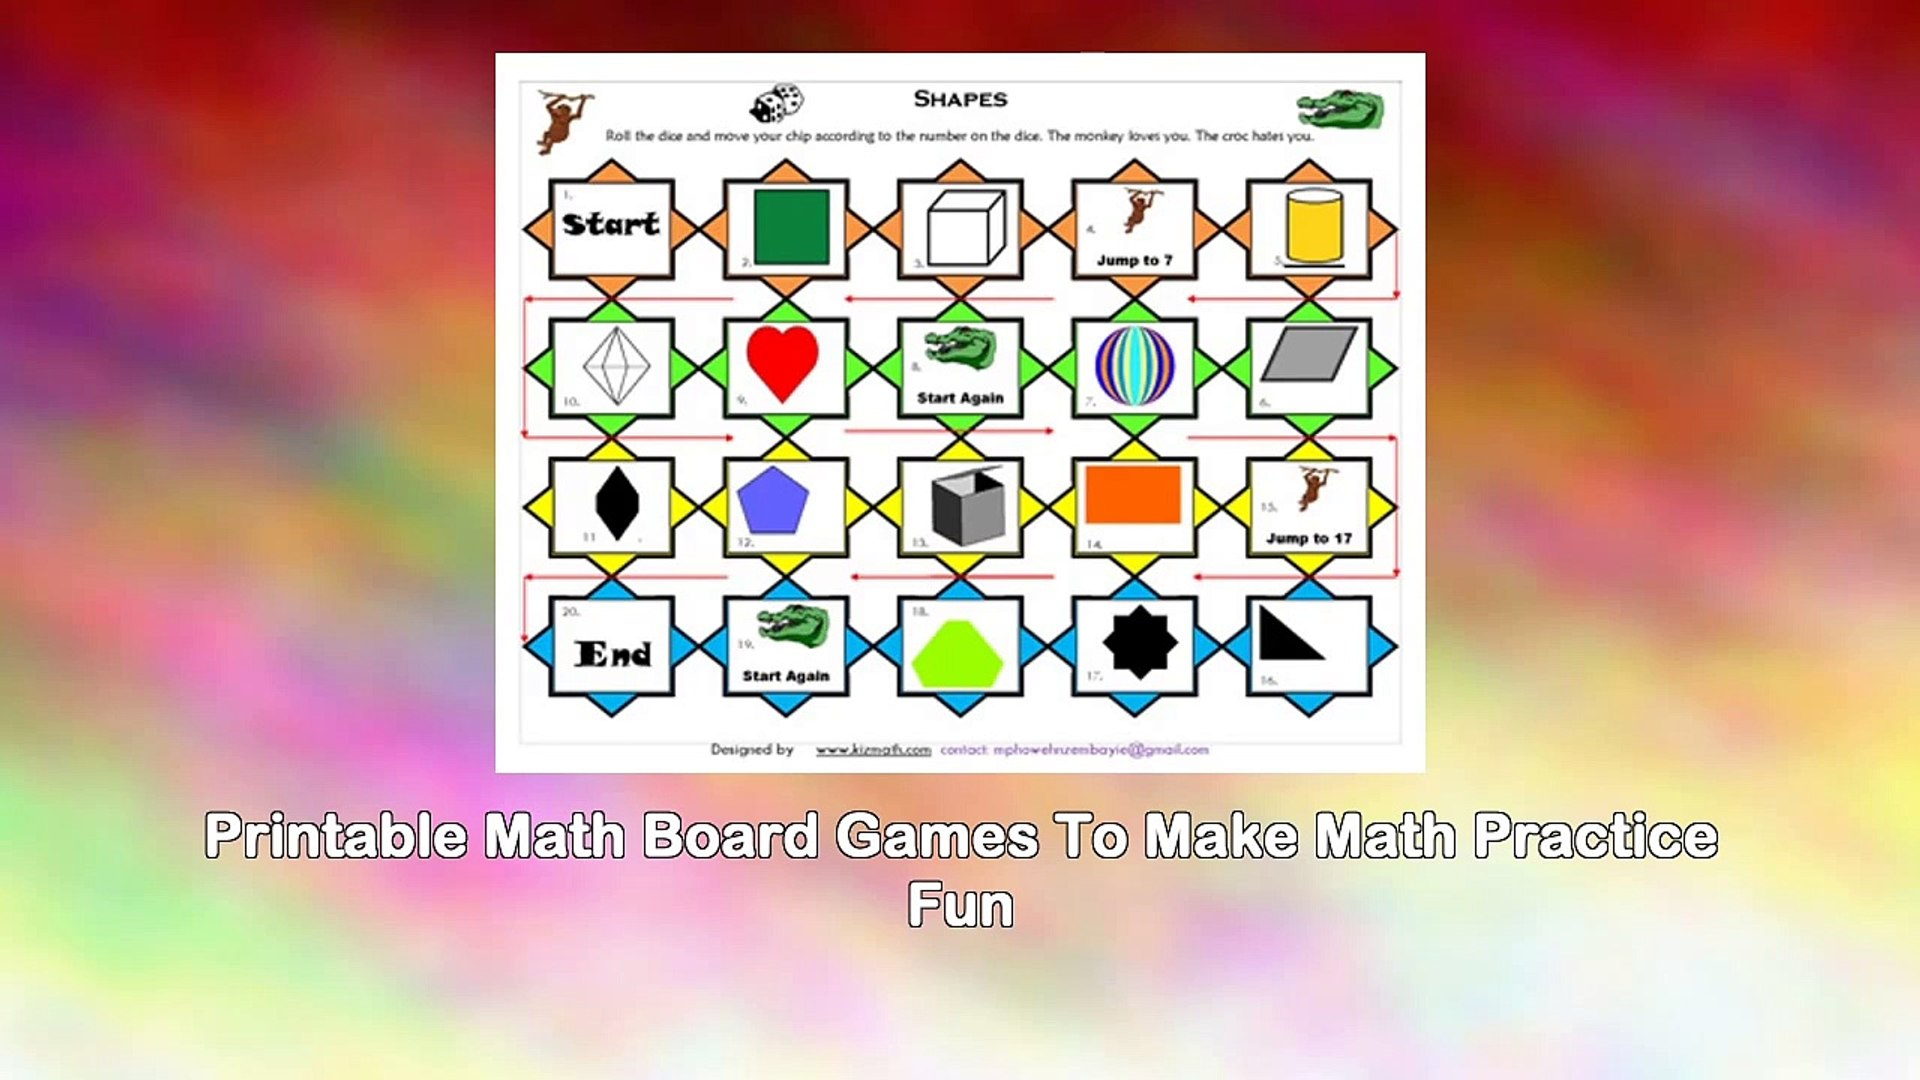 photo relating to Printable Math Board Games named The Math Board Video games Guide - Printable Math Video games